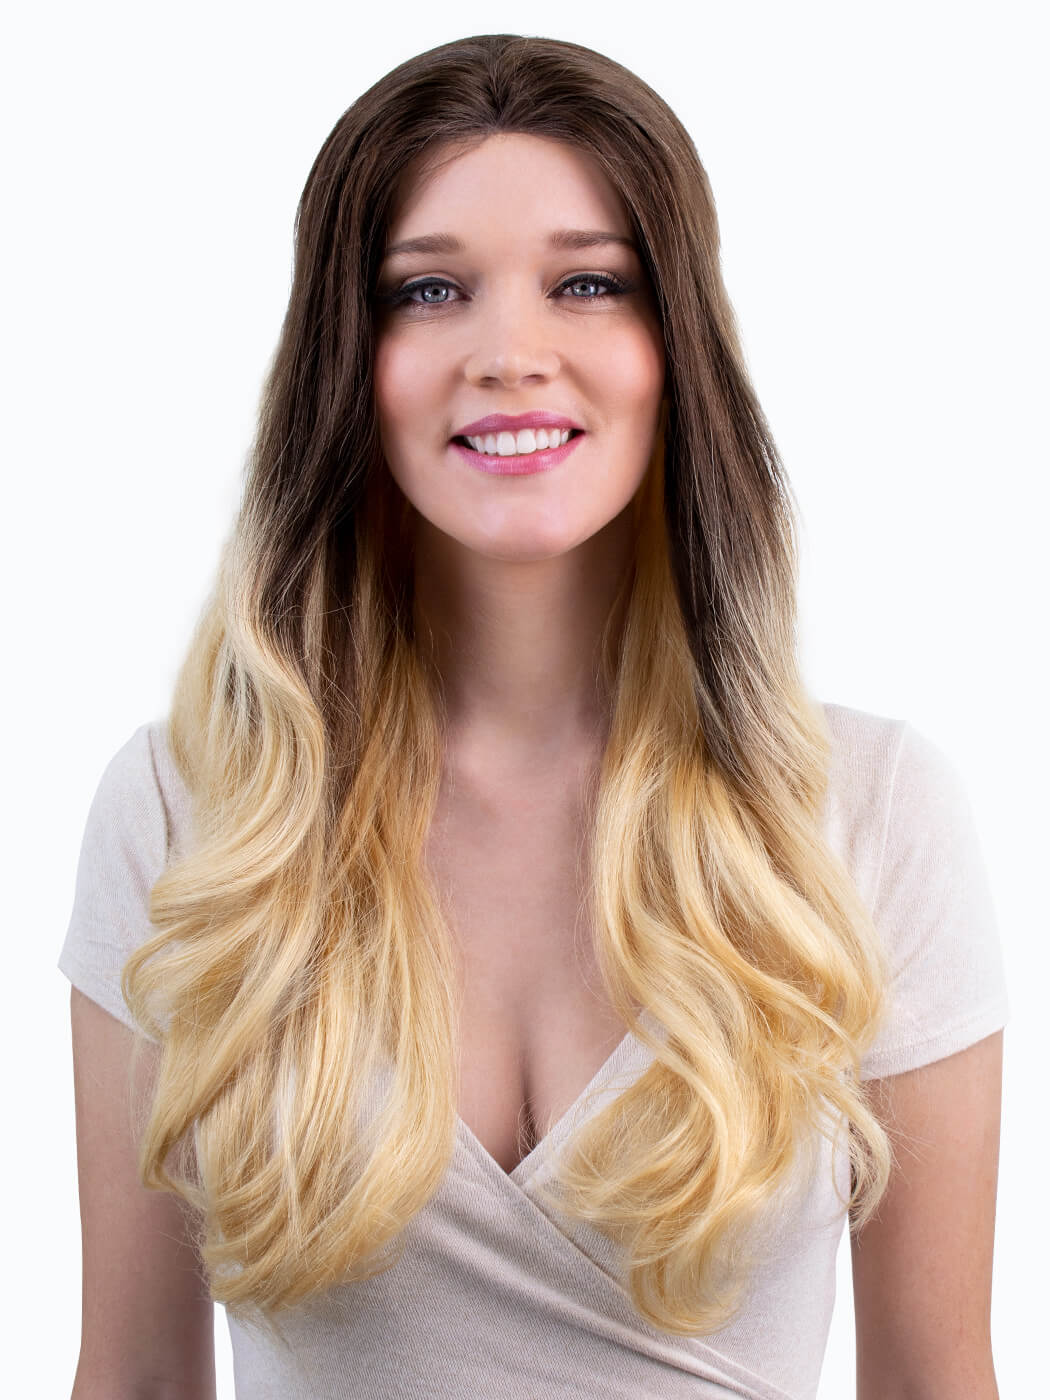 Ethereal - Dark Rooted Blonde Wig   Front View On Model   Human Hair Wig   Long Wig